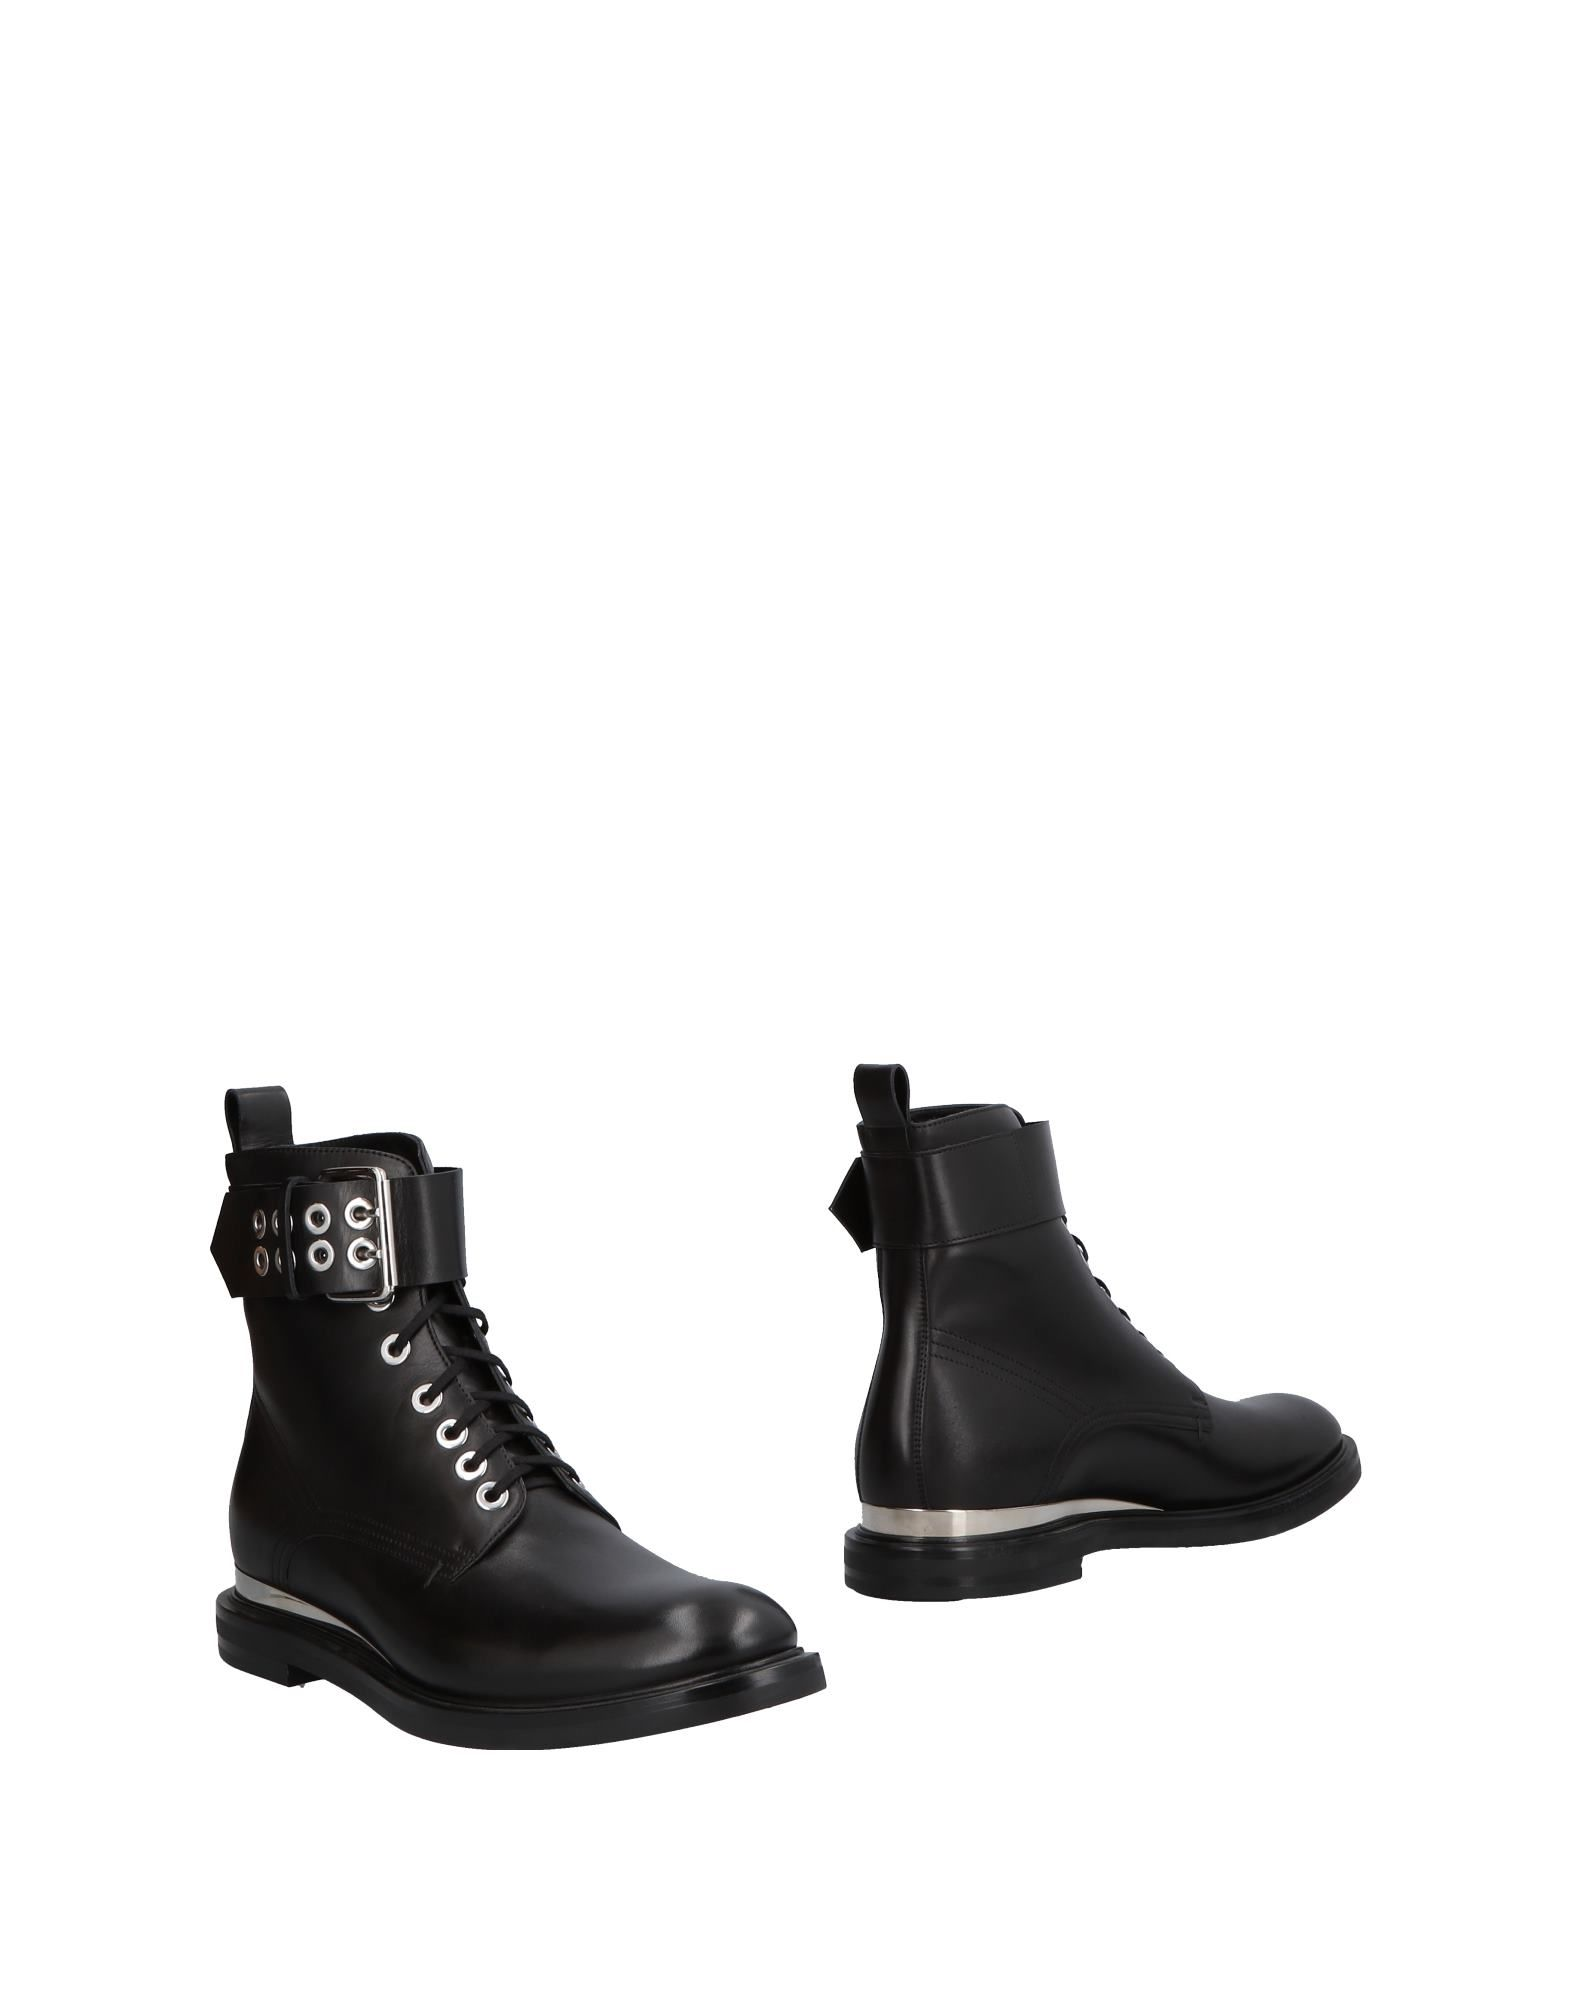 CESARE CASADEI Boots in Black